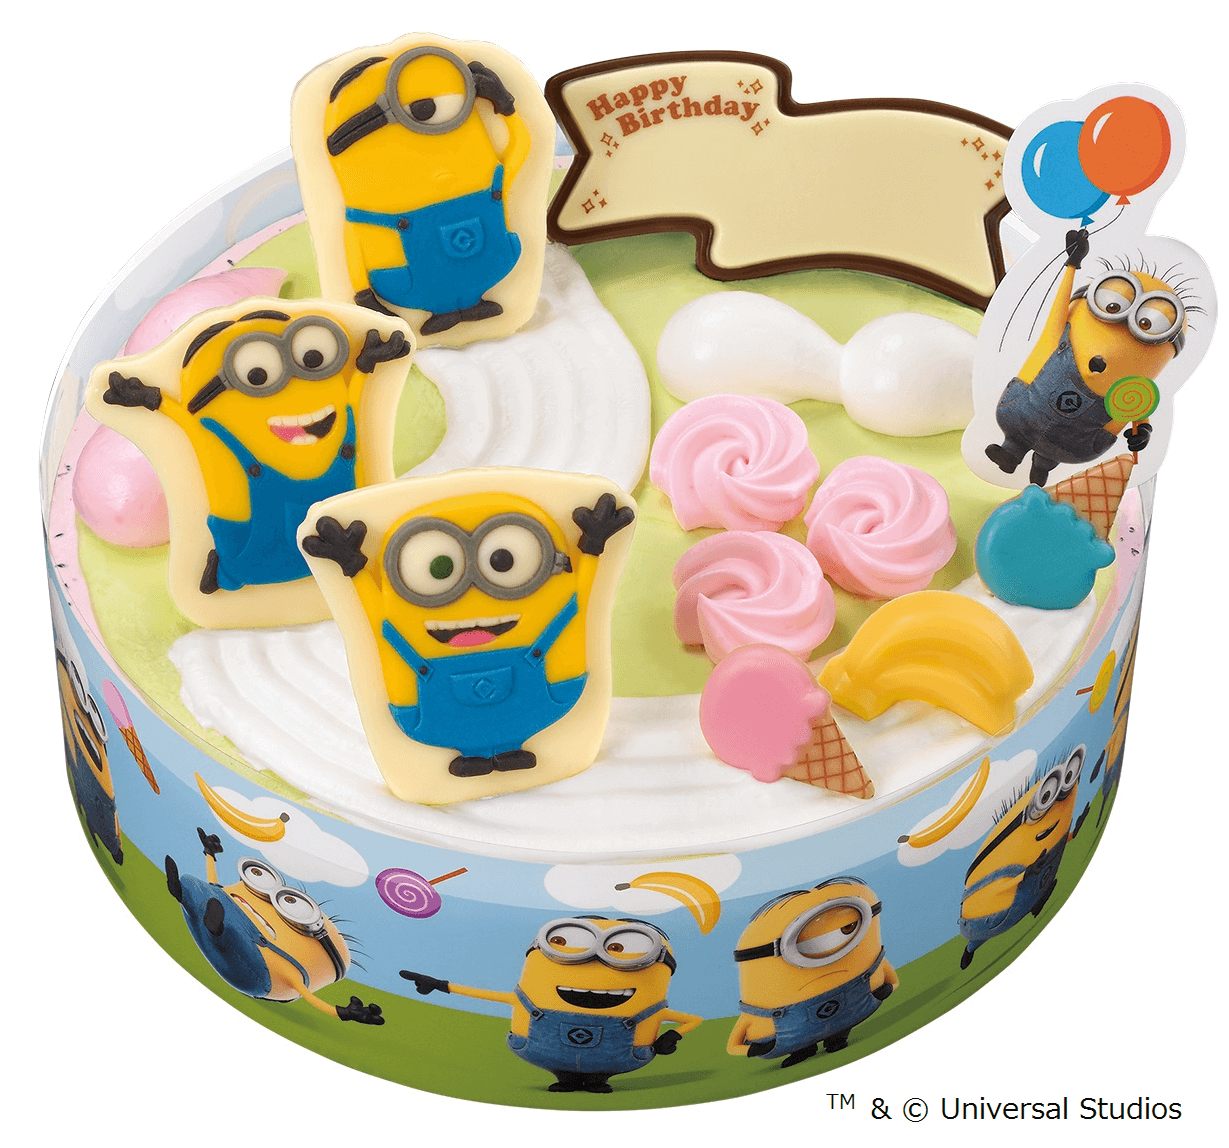 Limited Edition Minions Ice Cream To Be Sold This Summer At Baskin